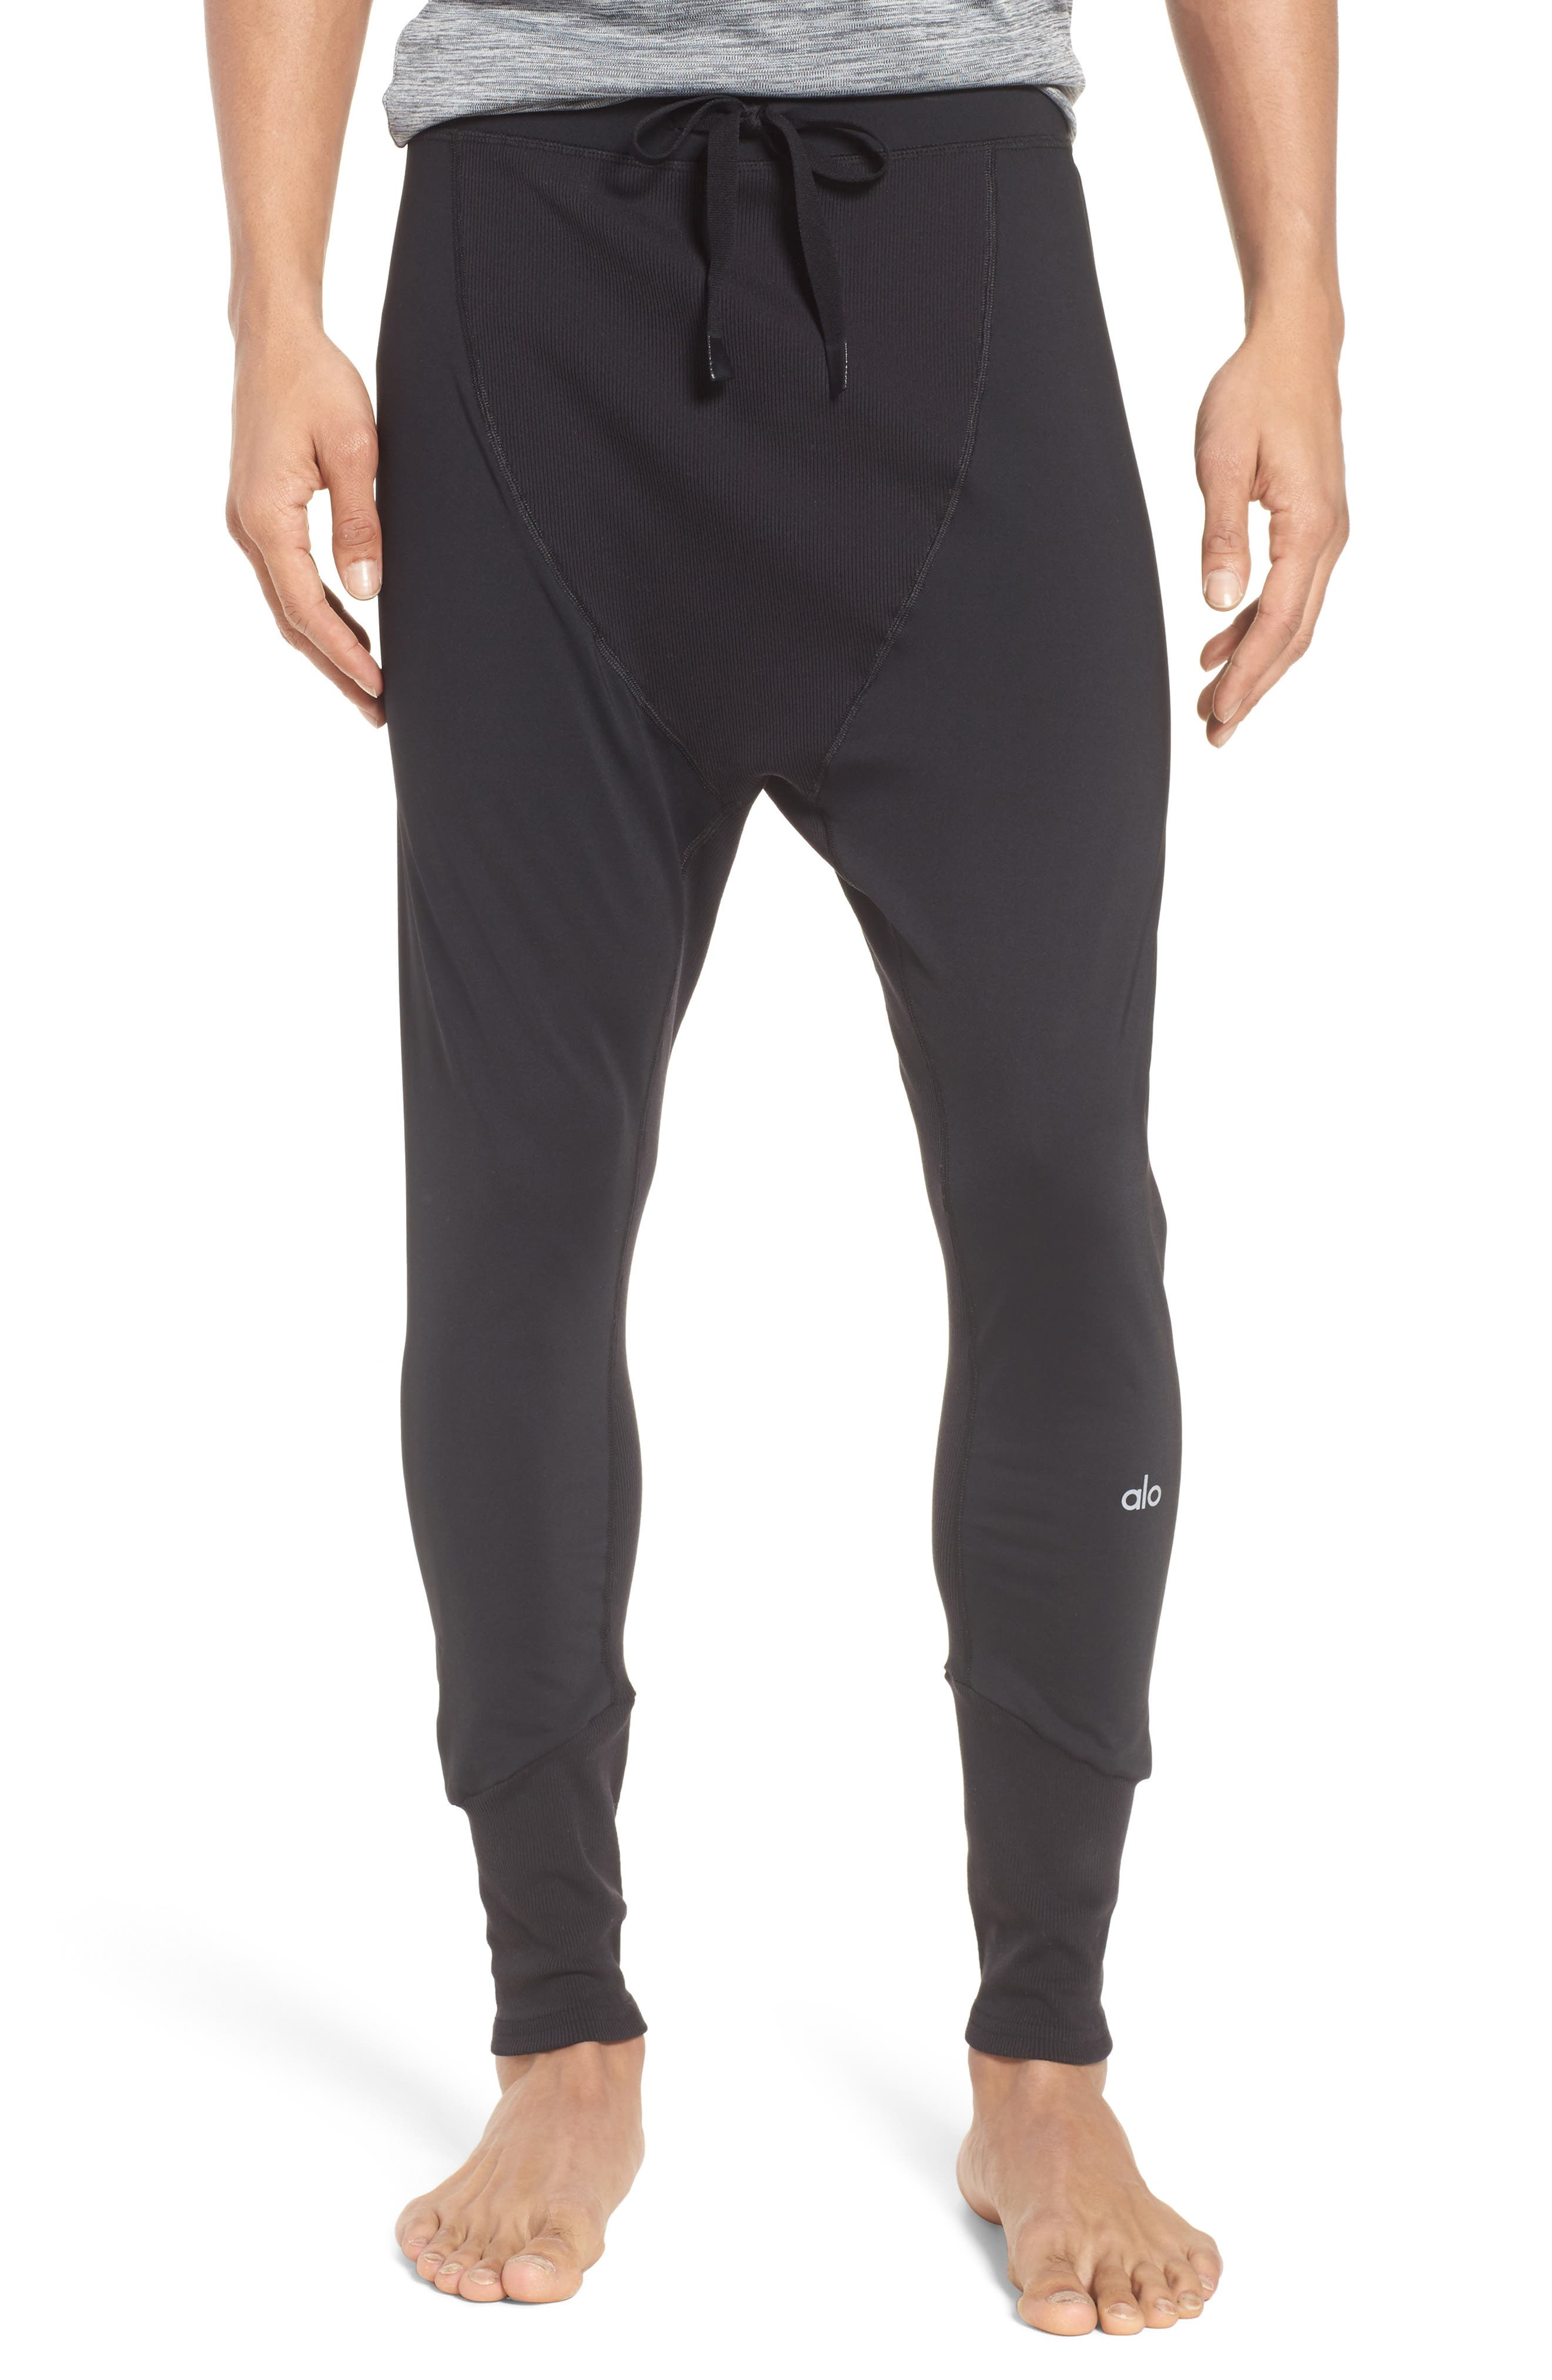 ALO, Rebel Jogger Pants, Main thumbnail 1, color, BLACK